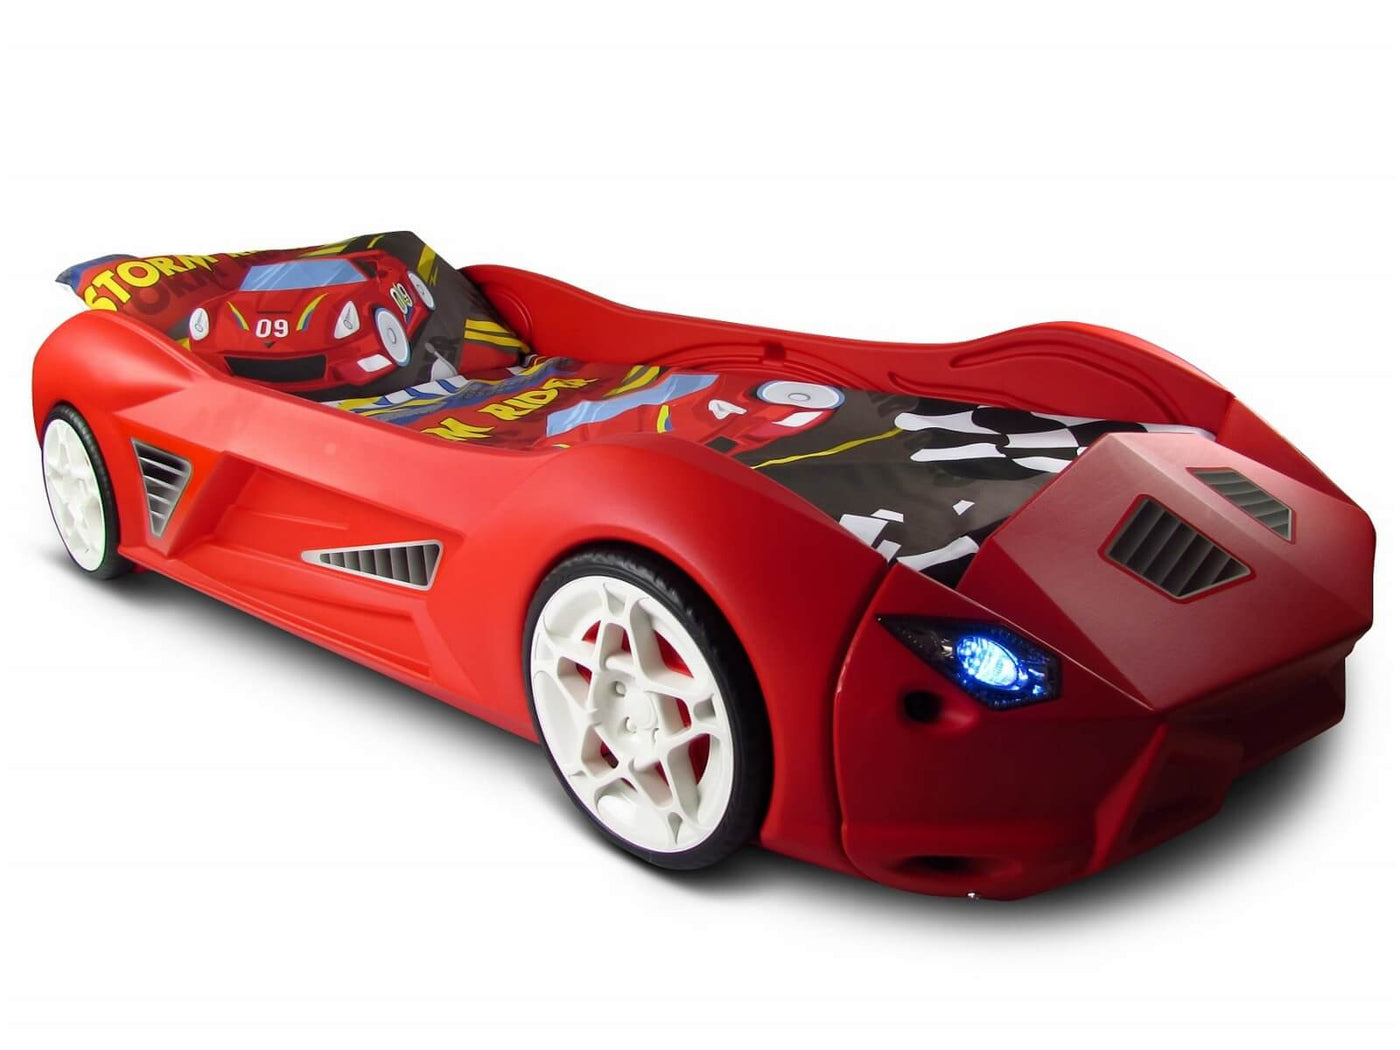 Storm Kids Toddler Racing Car Bed with Lights and Sounds – Toyz World